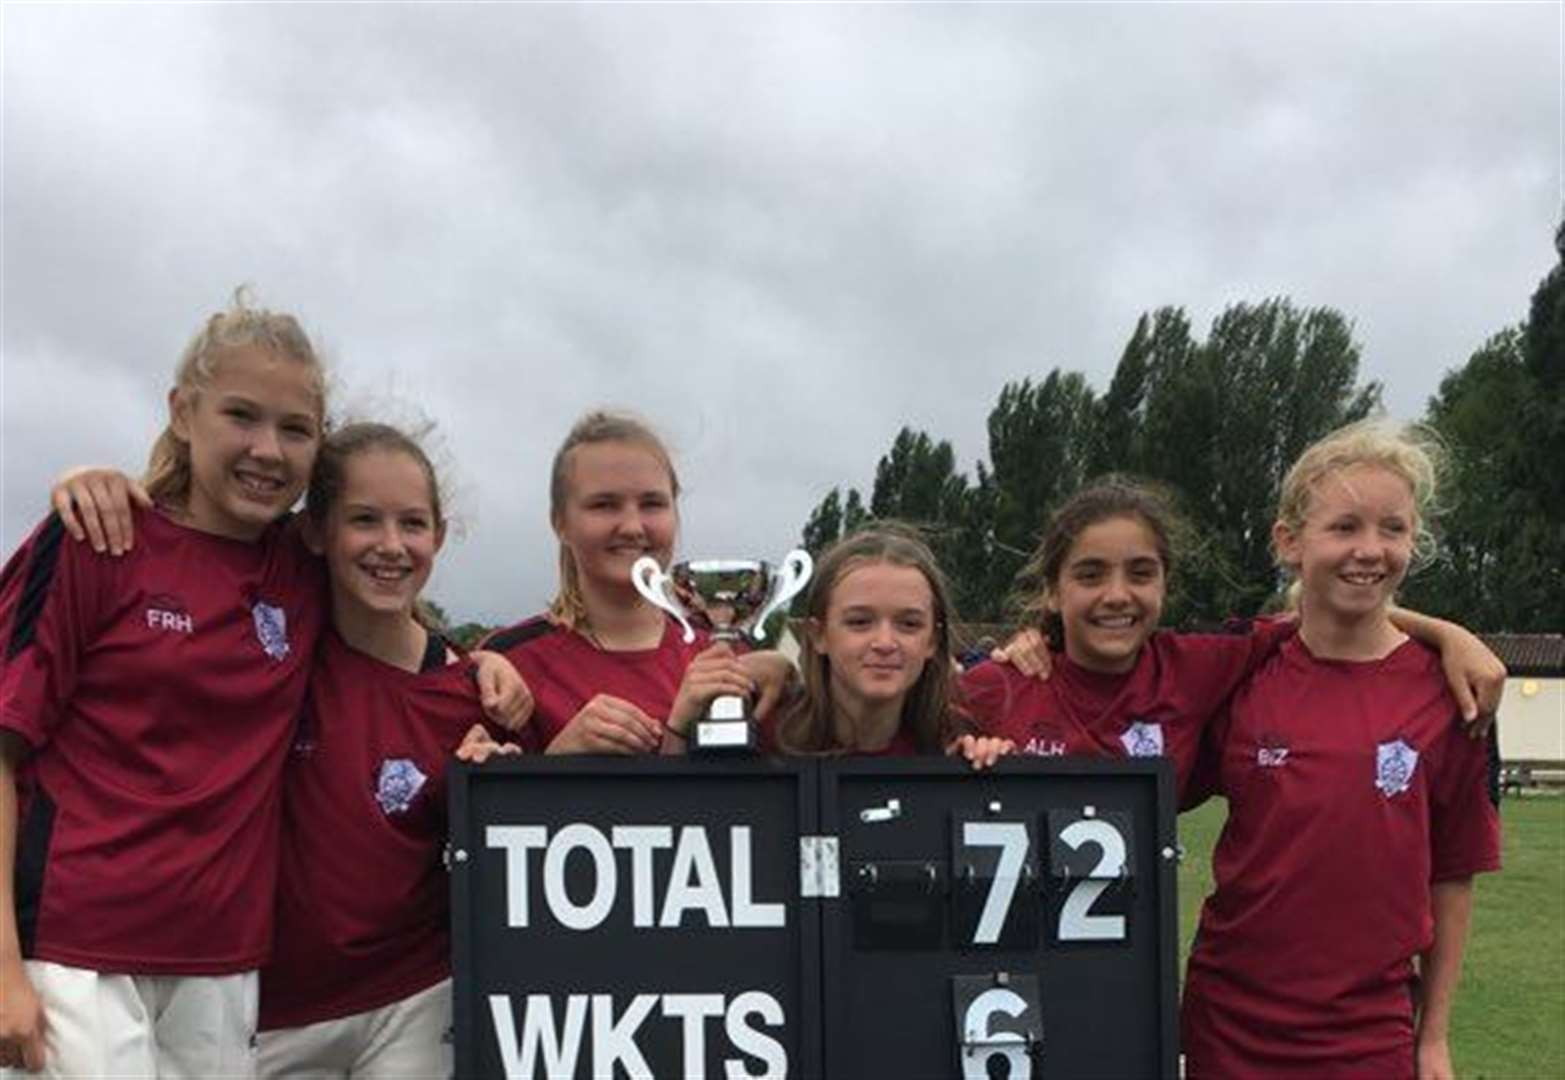 Coton under-13s and Thriplow under-15s girls' cricket teams reach Lady Taverners T20 National finals